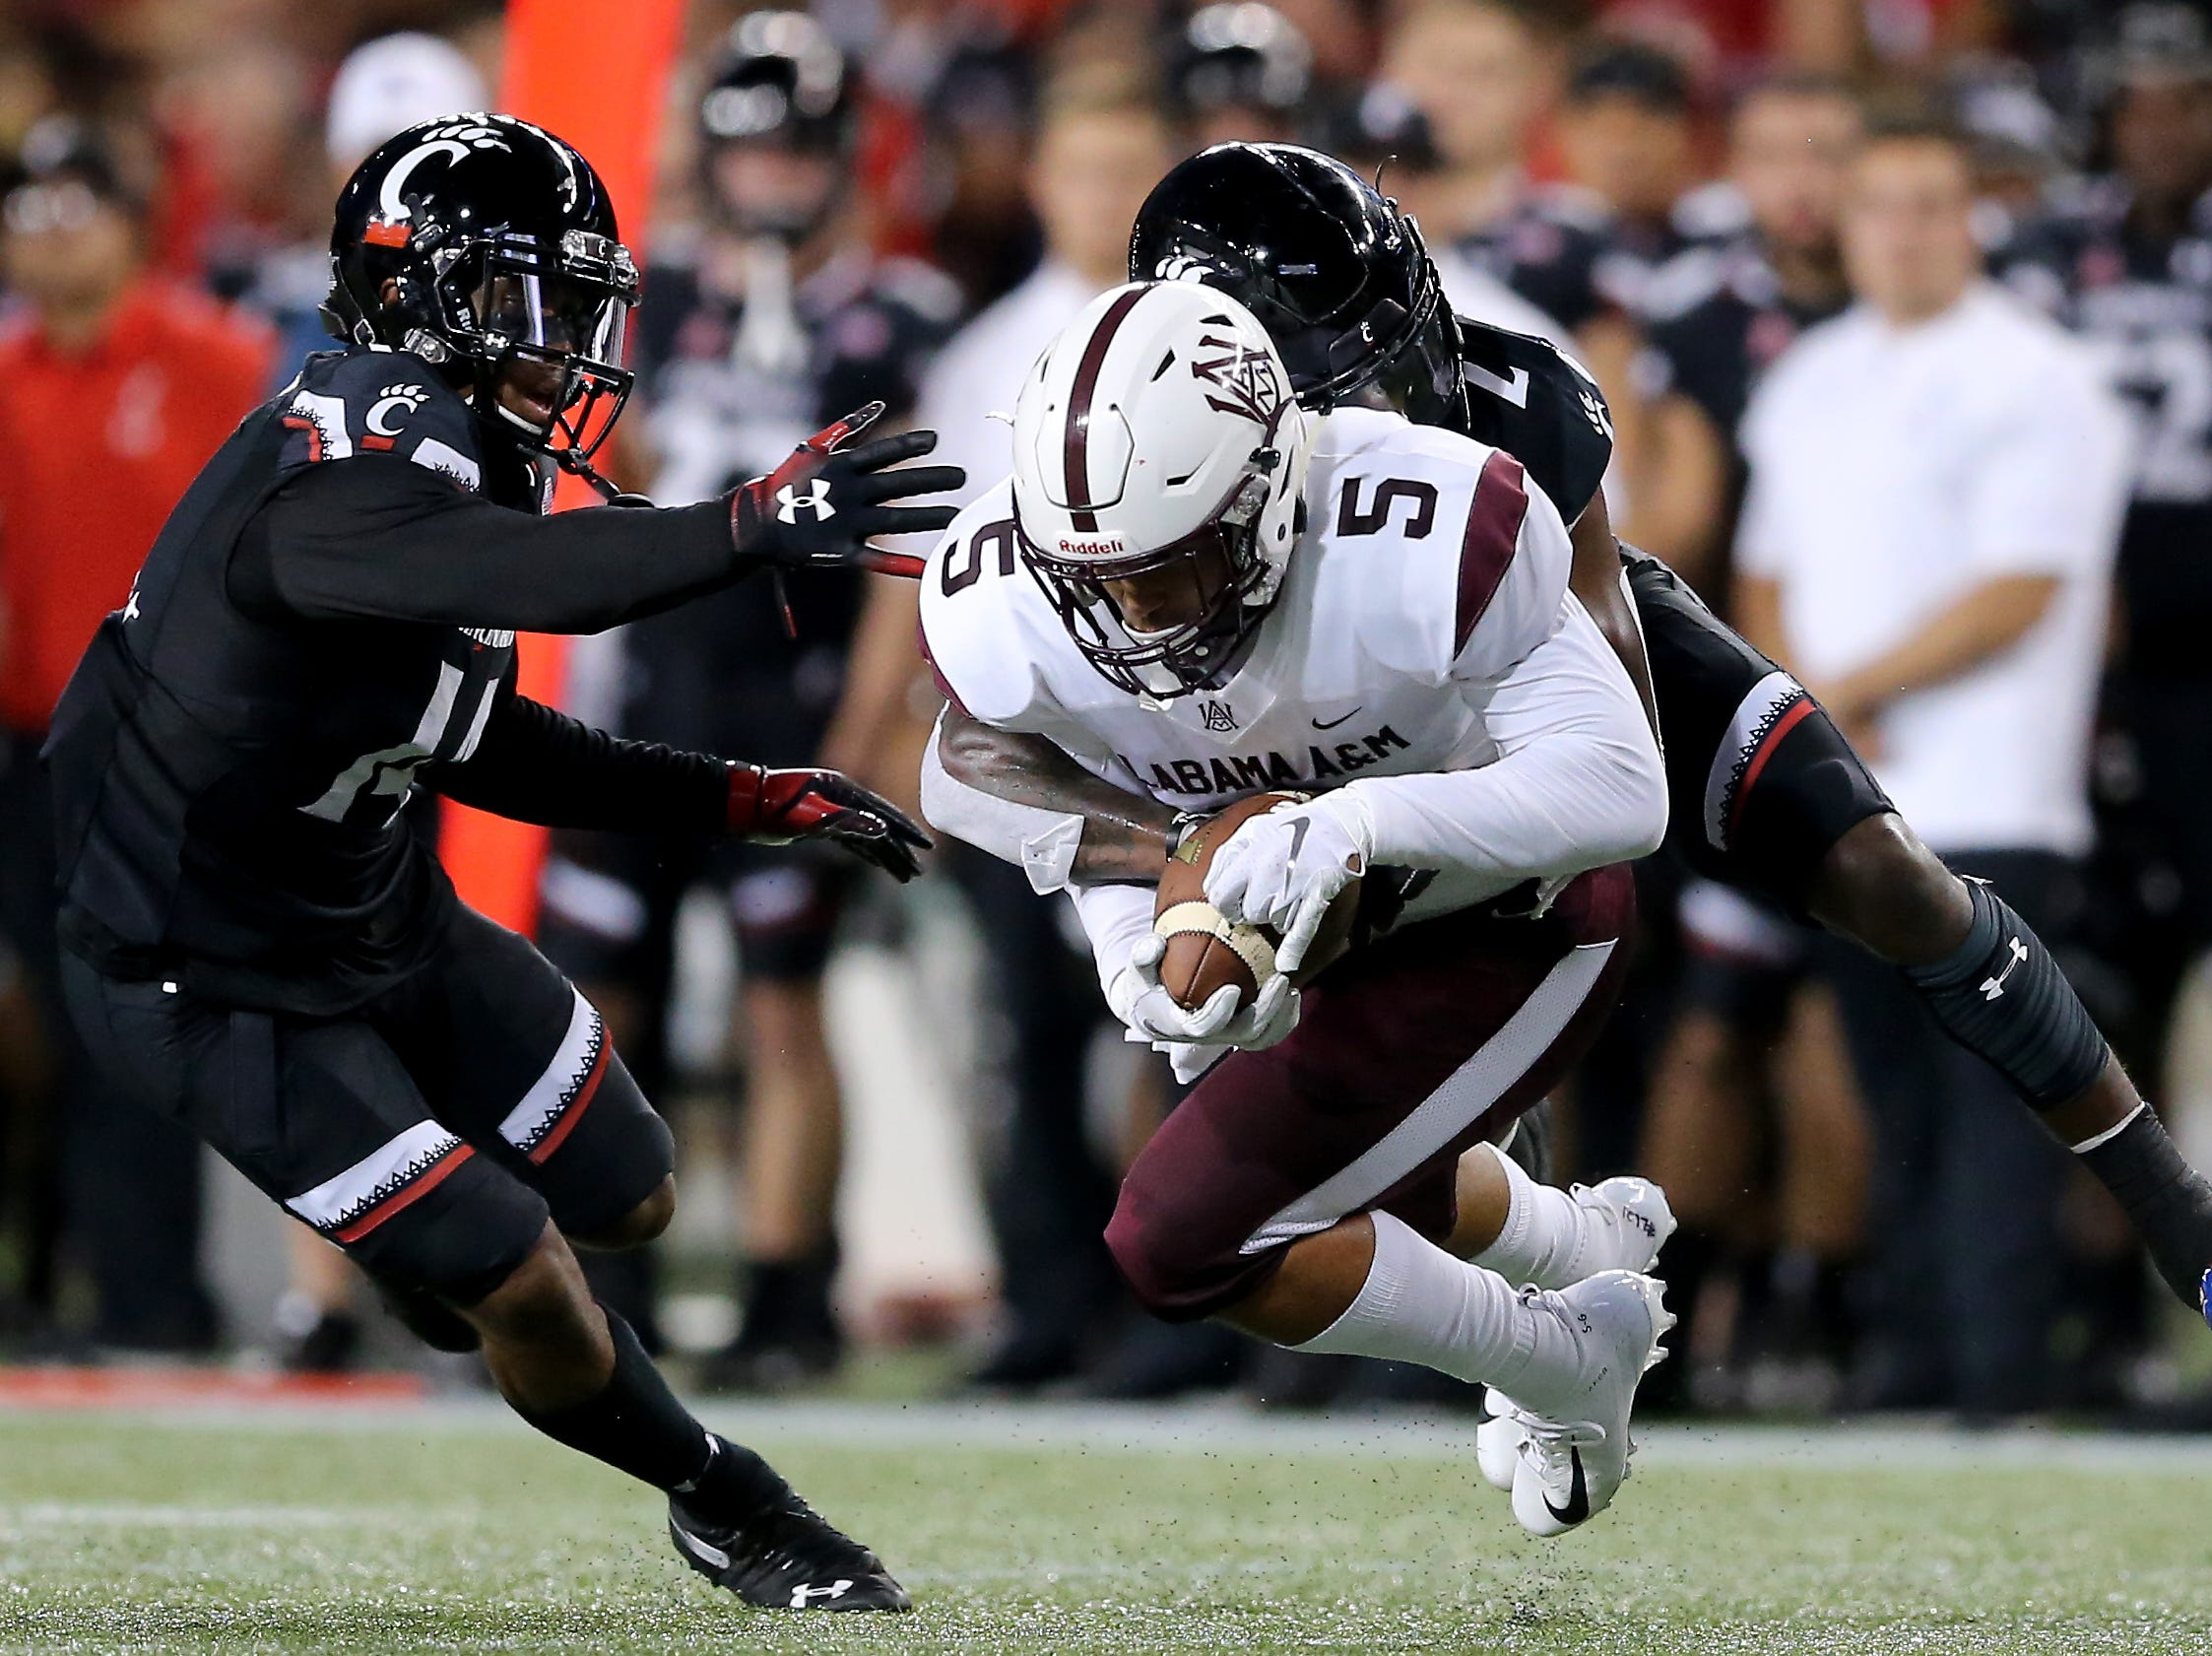 Cincinnati Bearcats cornerback Tyrell Gilbert (2) tackled Alabama A&M Bulldogs wide receiver Isaiah Bailey (5) in the second quarter during a college football game between the Cincinnati Bearcats and the Alabama A&M Bulldogs, Saturday, Sept. 15, 2018, at Nippert Stadium in Cincinnati.